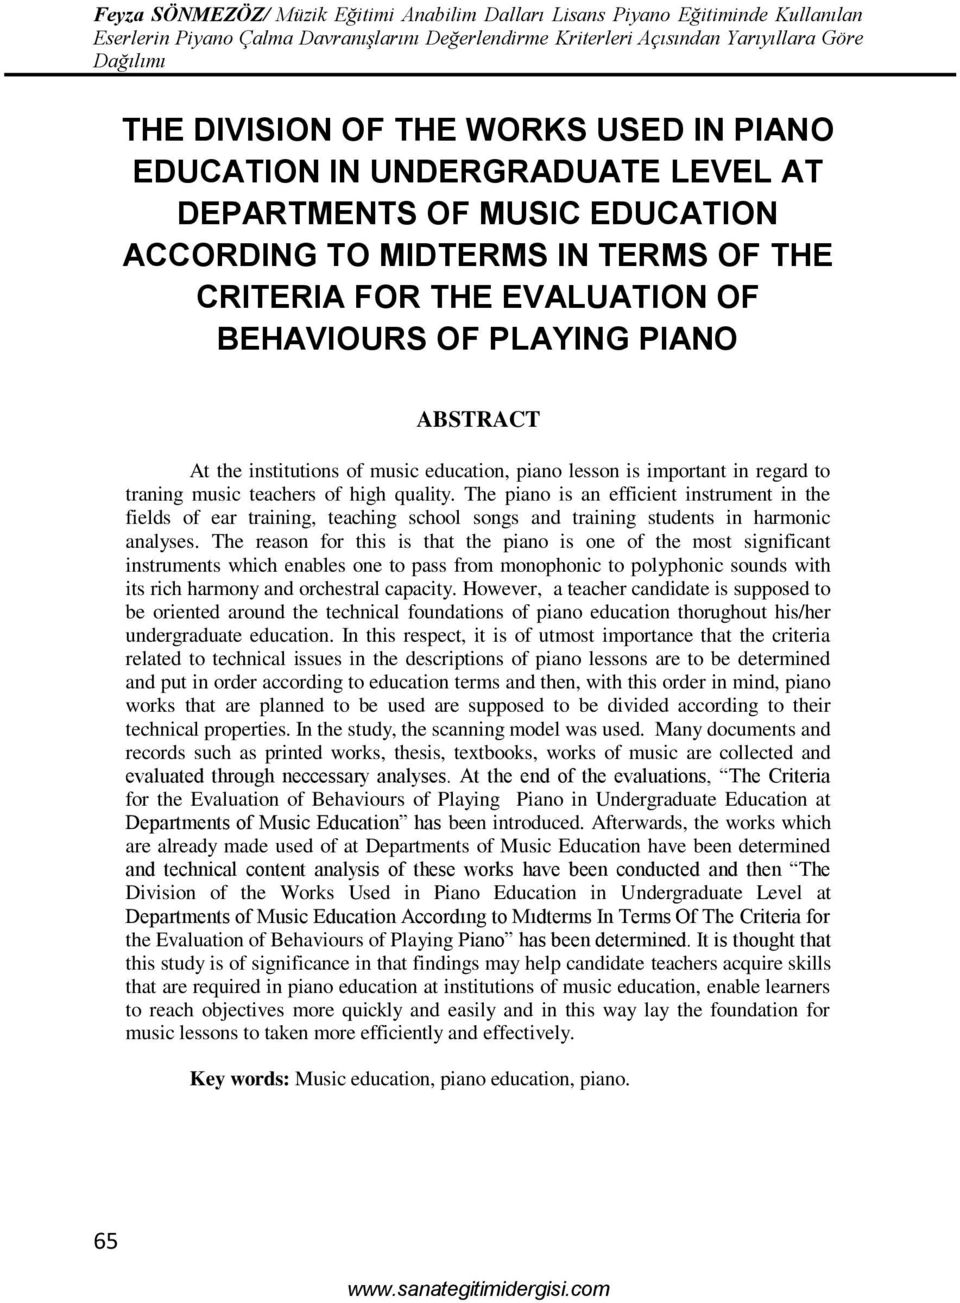 The piano is an efficient instrument in the fields of ear training, teaching school songs and training students in harmonic analyses.